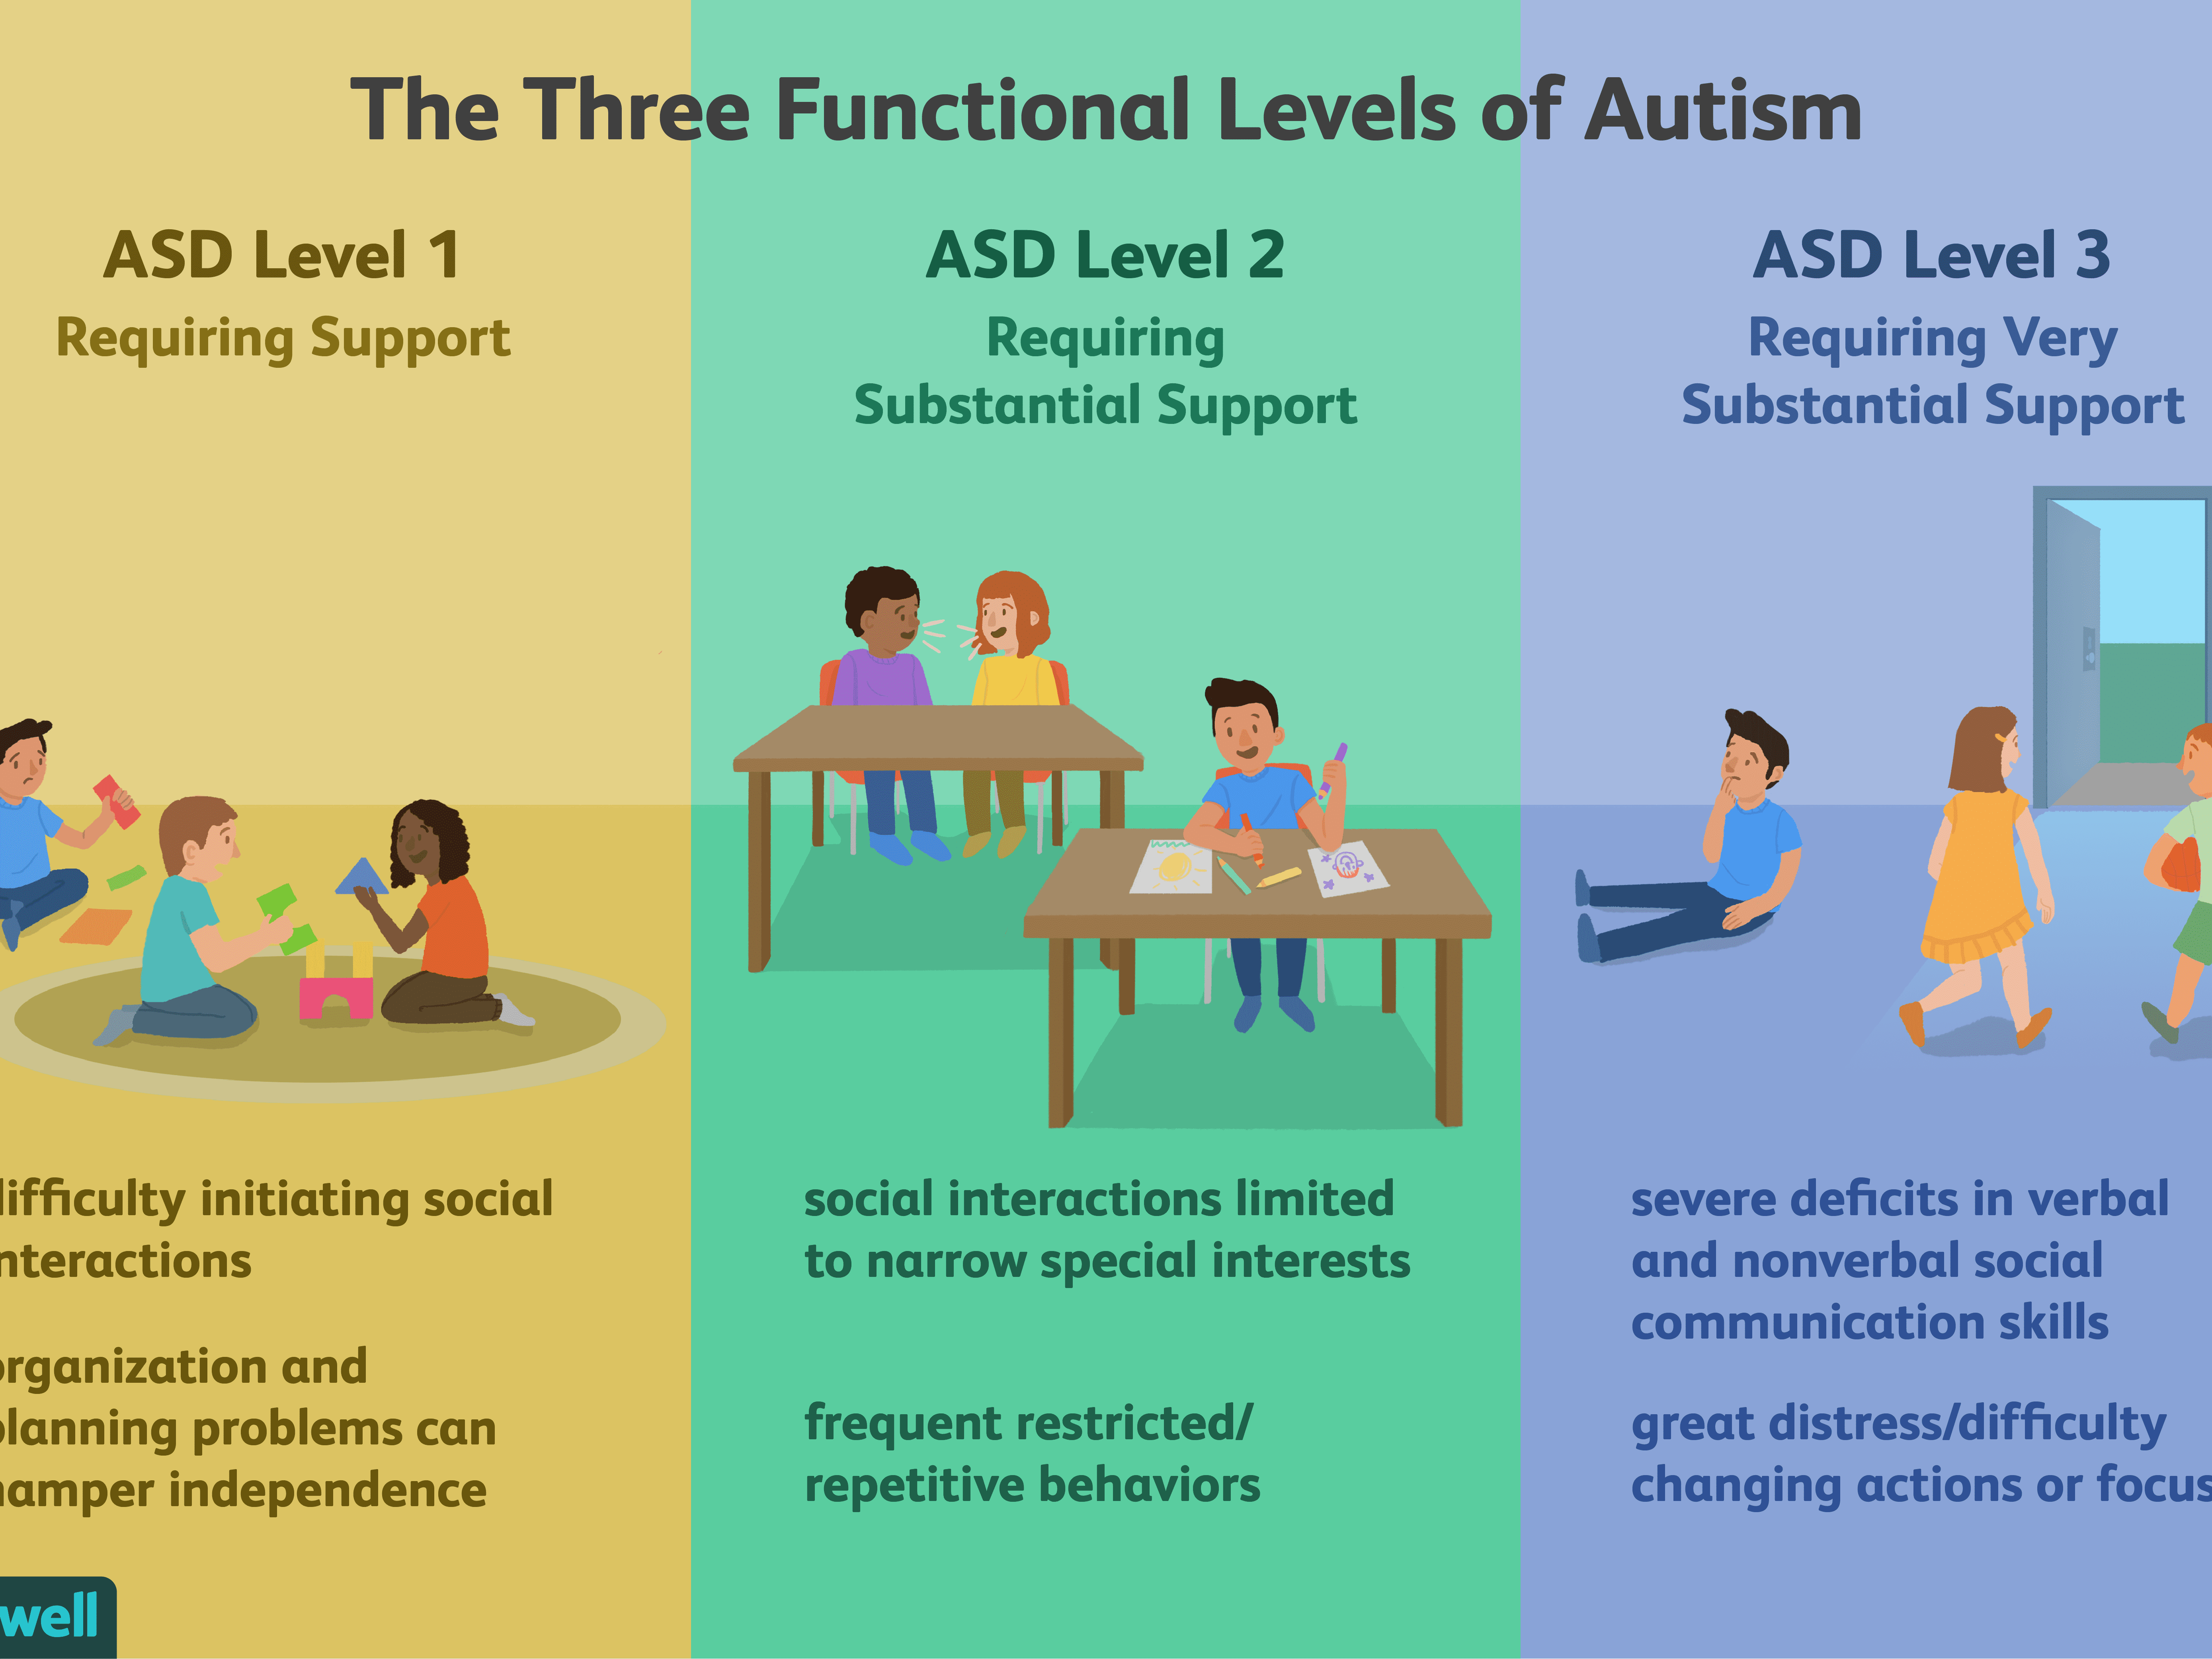 Making Sense Of The 3 Levels Of Autism